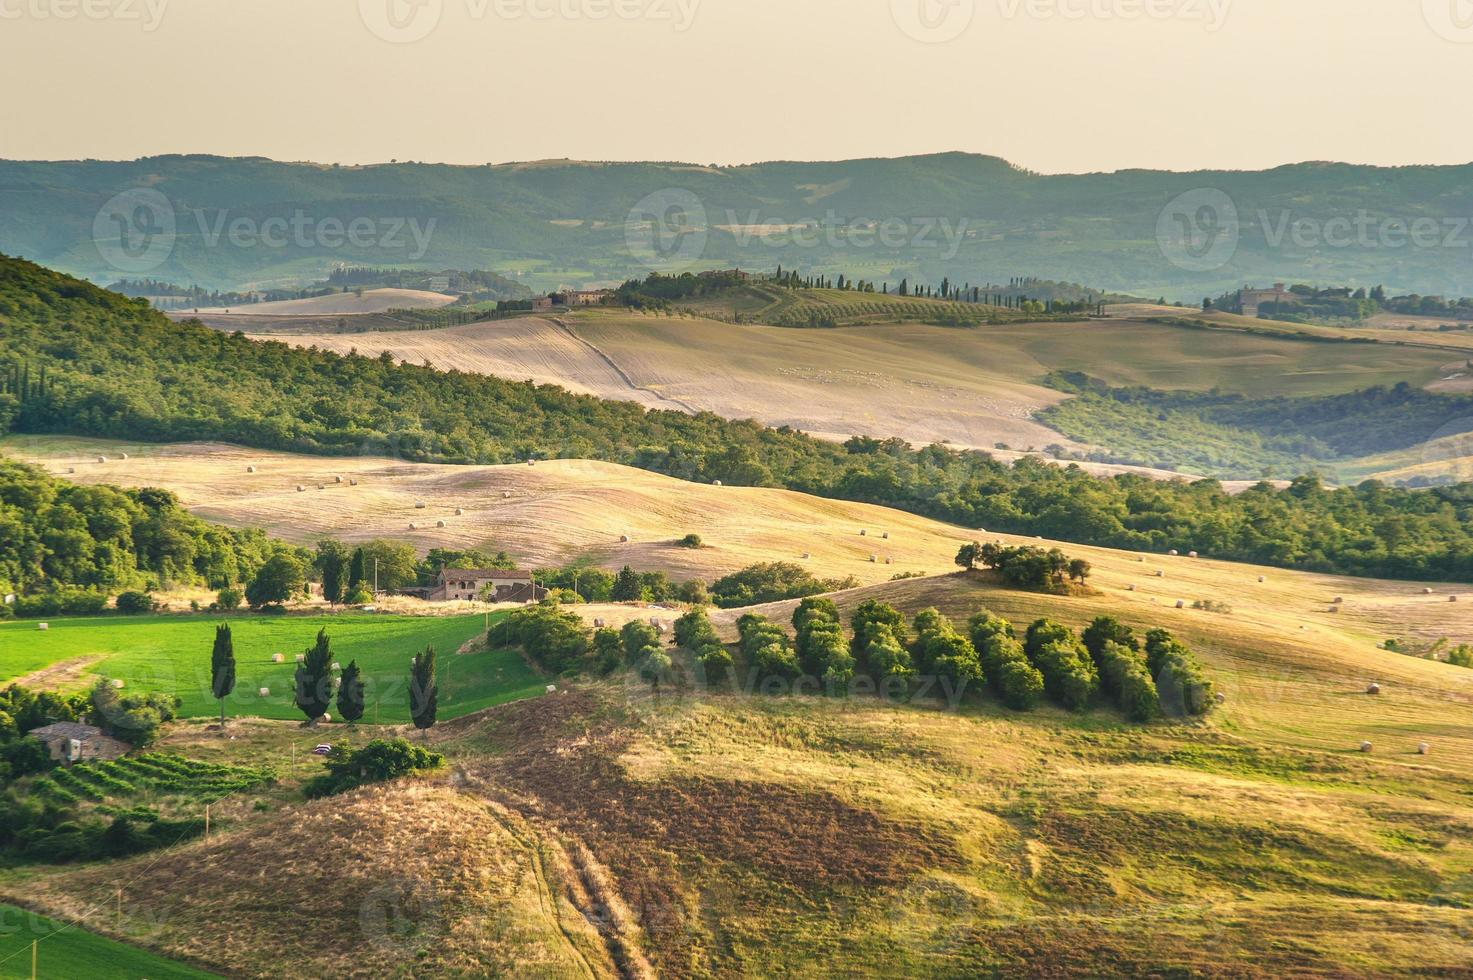 Landscape of Medieval painters in Tuscany, Italy photo